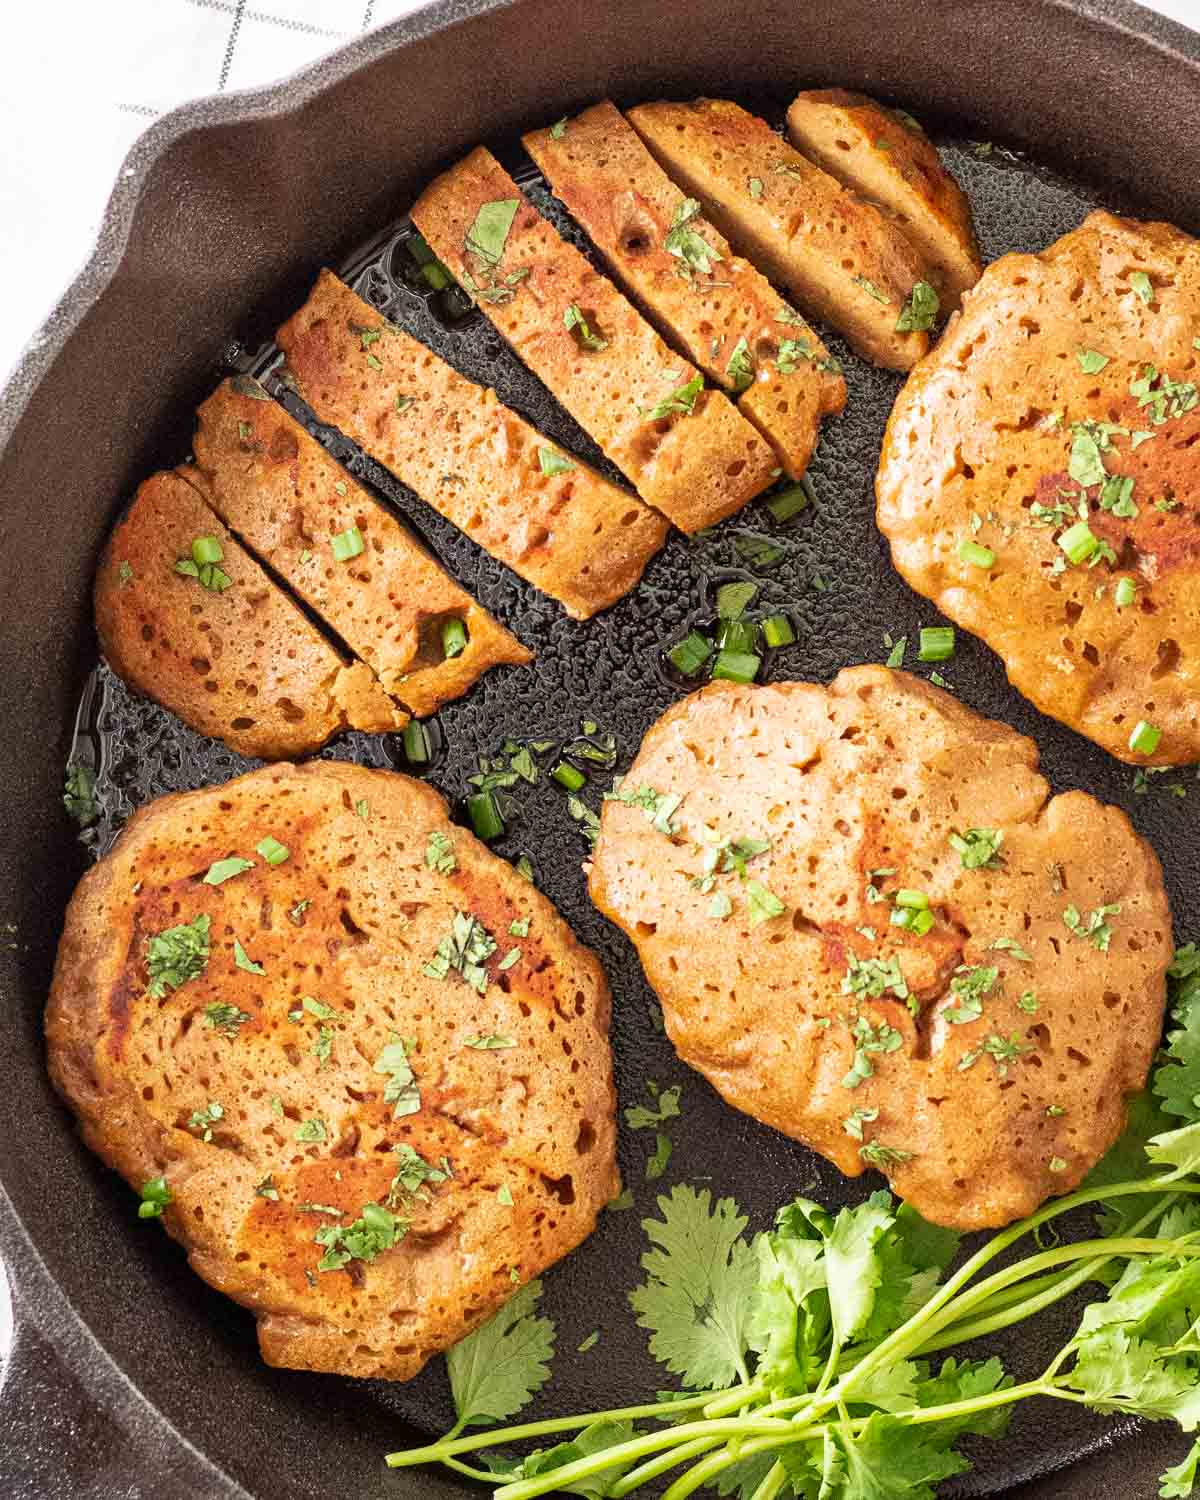 A few pieces of seitan chicken in a black pan with one of it being sliced into pieces. They are topped with chopped cilantro.